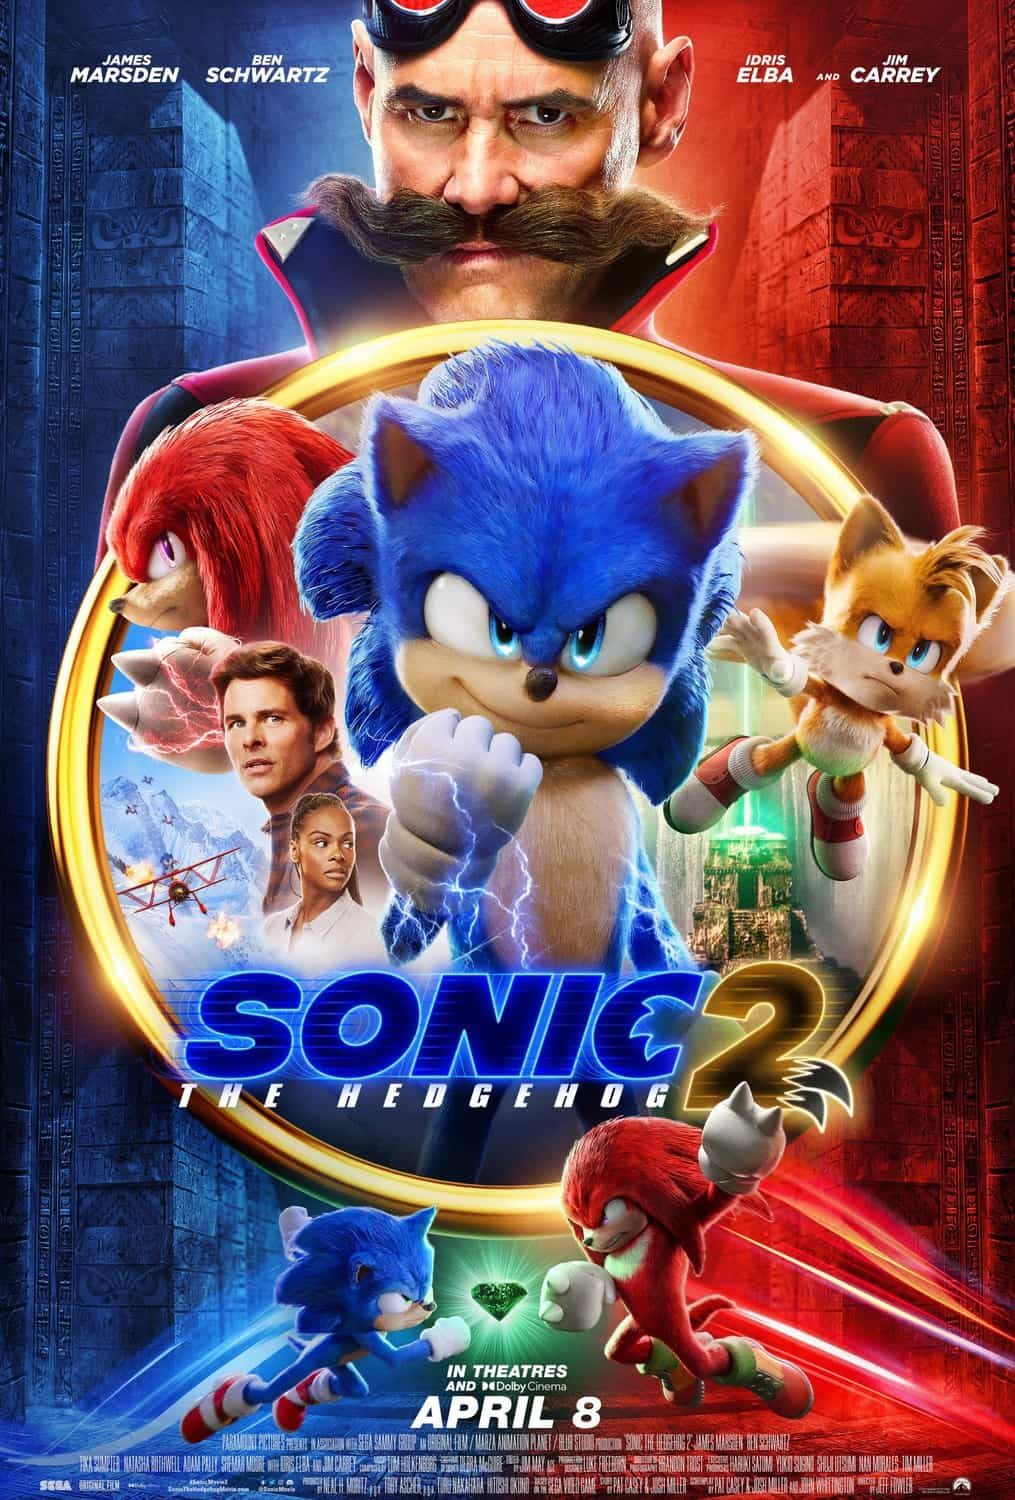 Sonic The Hedgehog 2 has been announced, and it looks like Tails will be in it, released April 8 2022